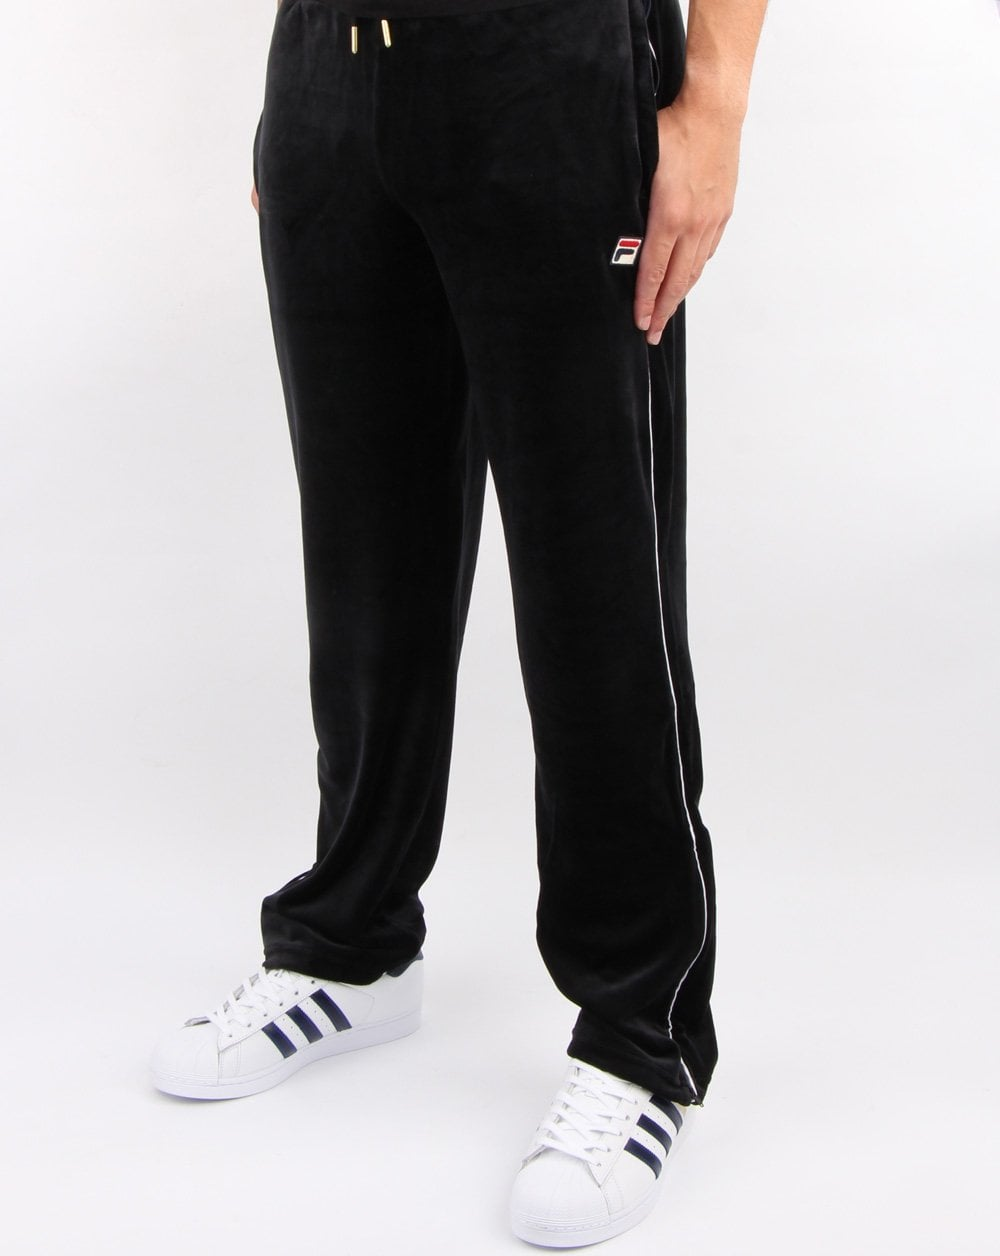 Fila Cyrus Velour Track Pants in black